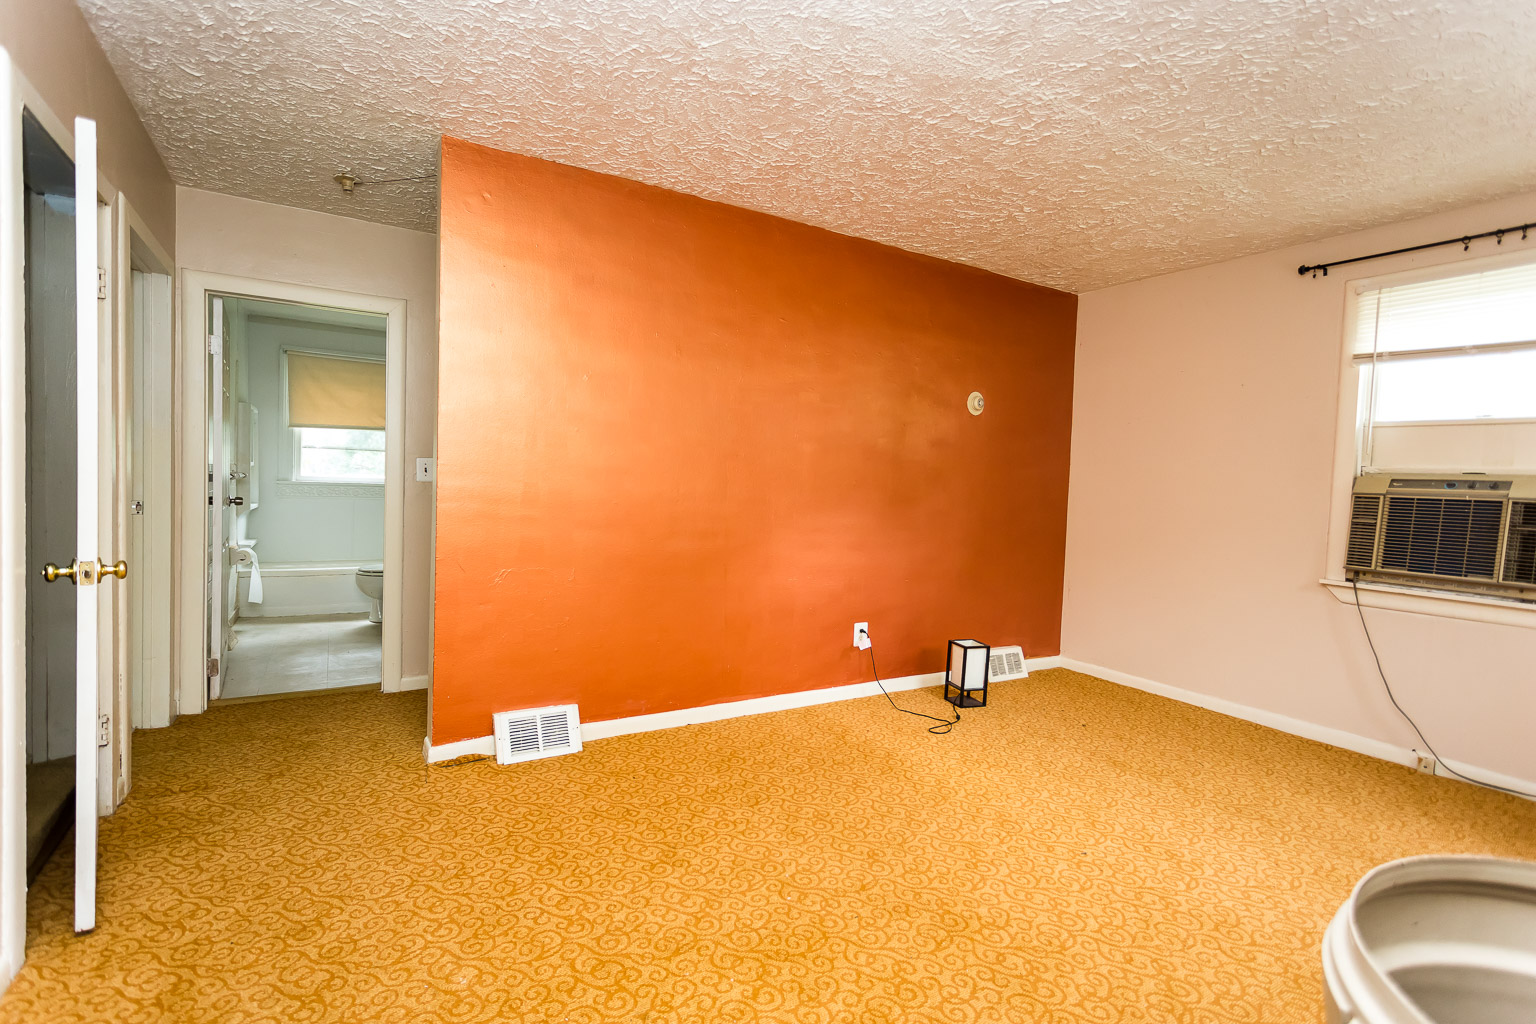 This is the before picture of the living room.